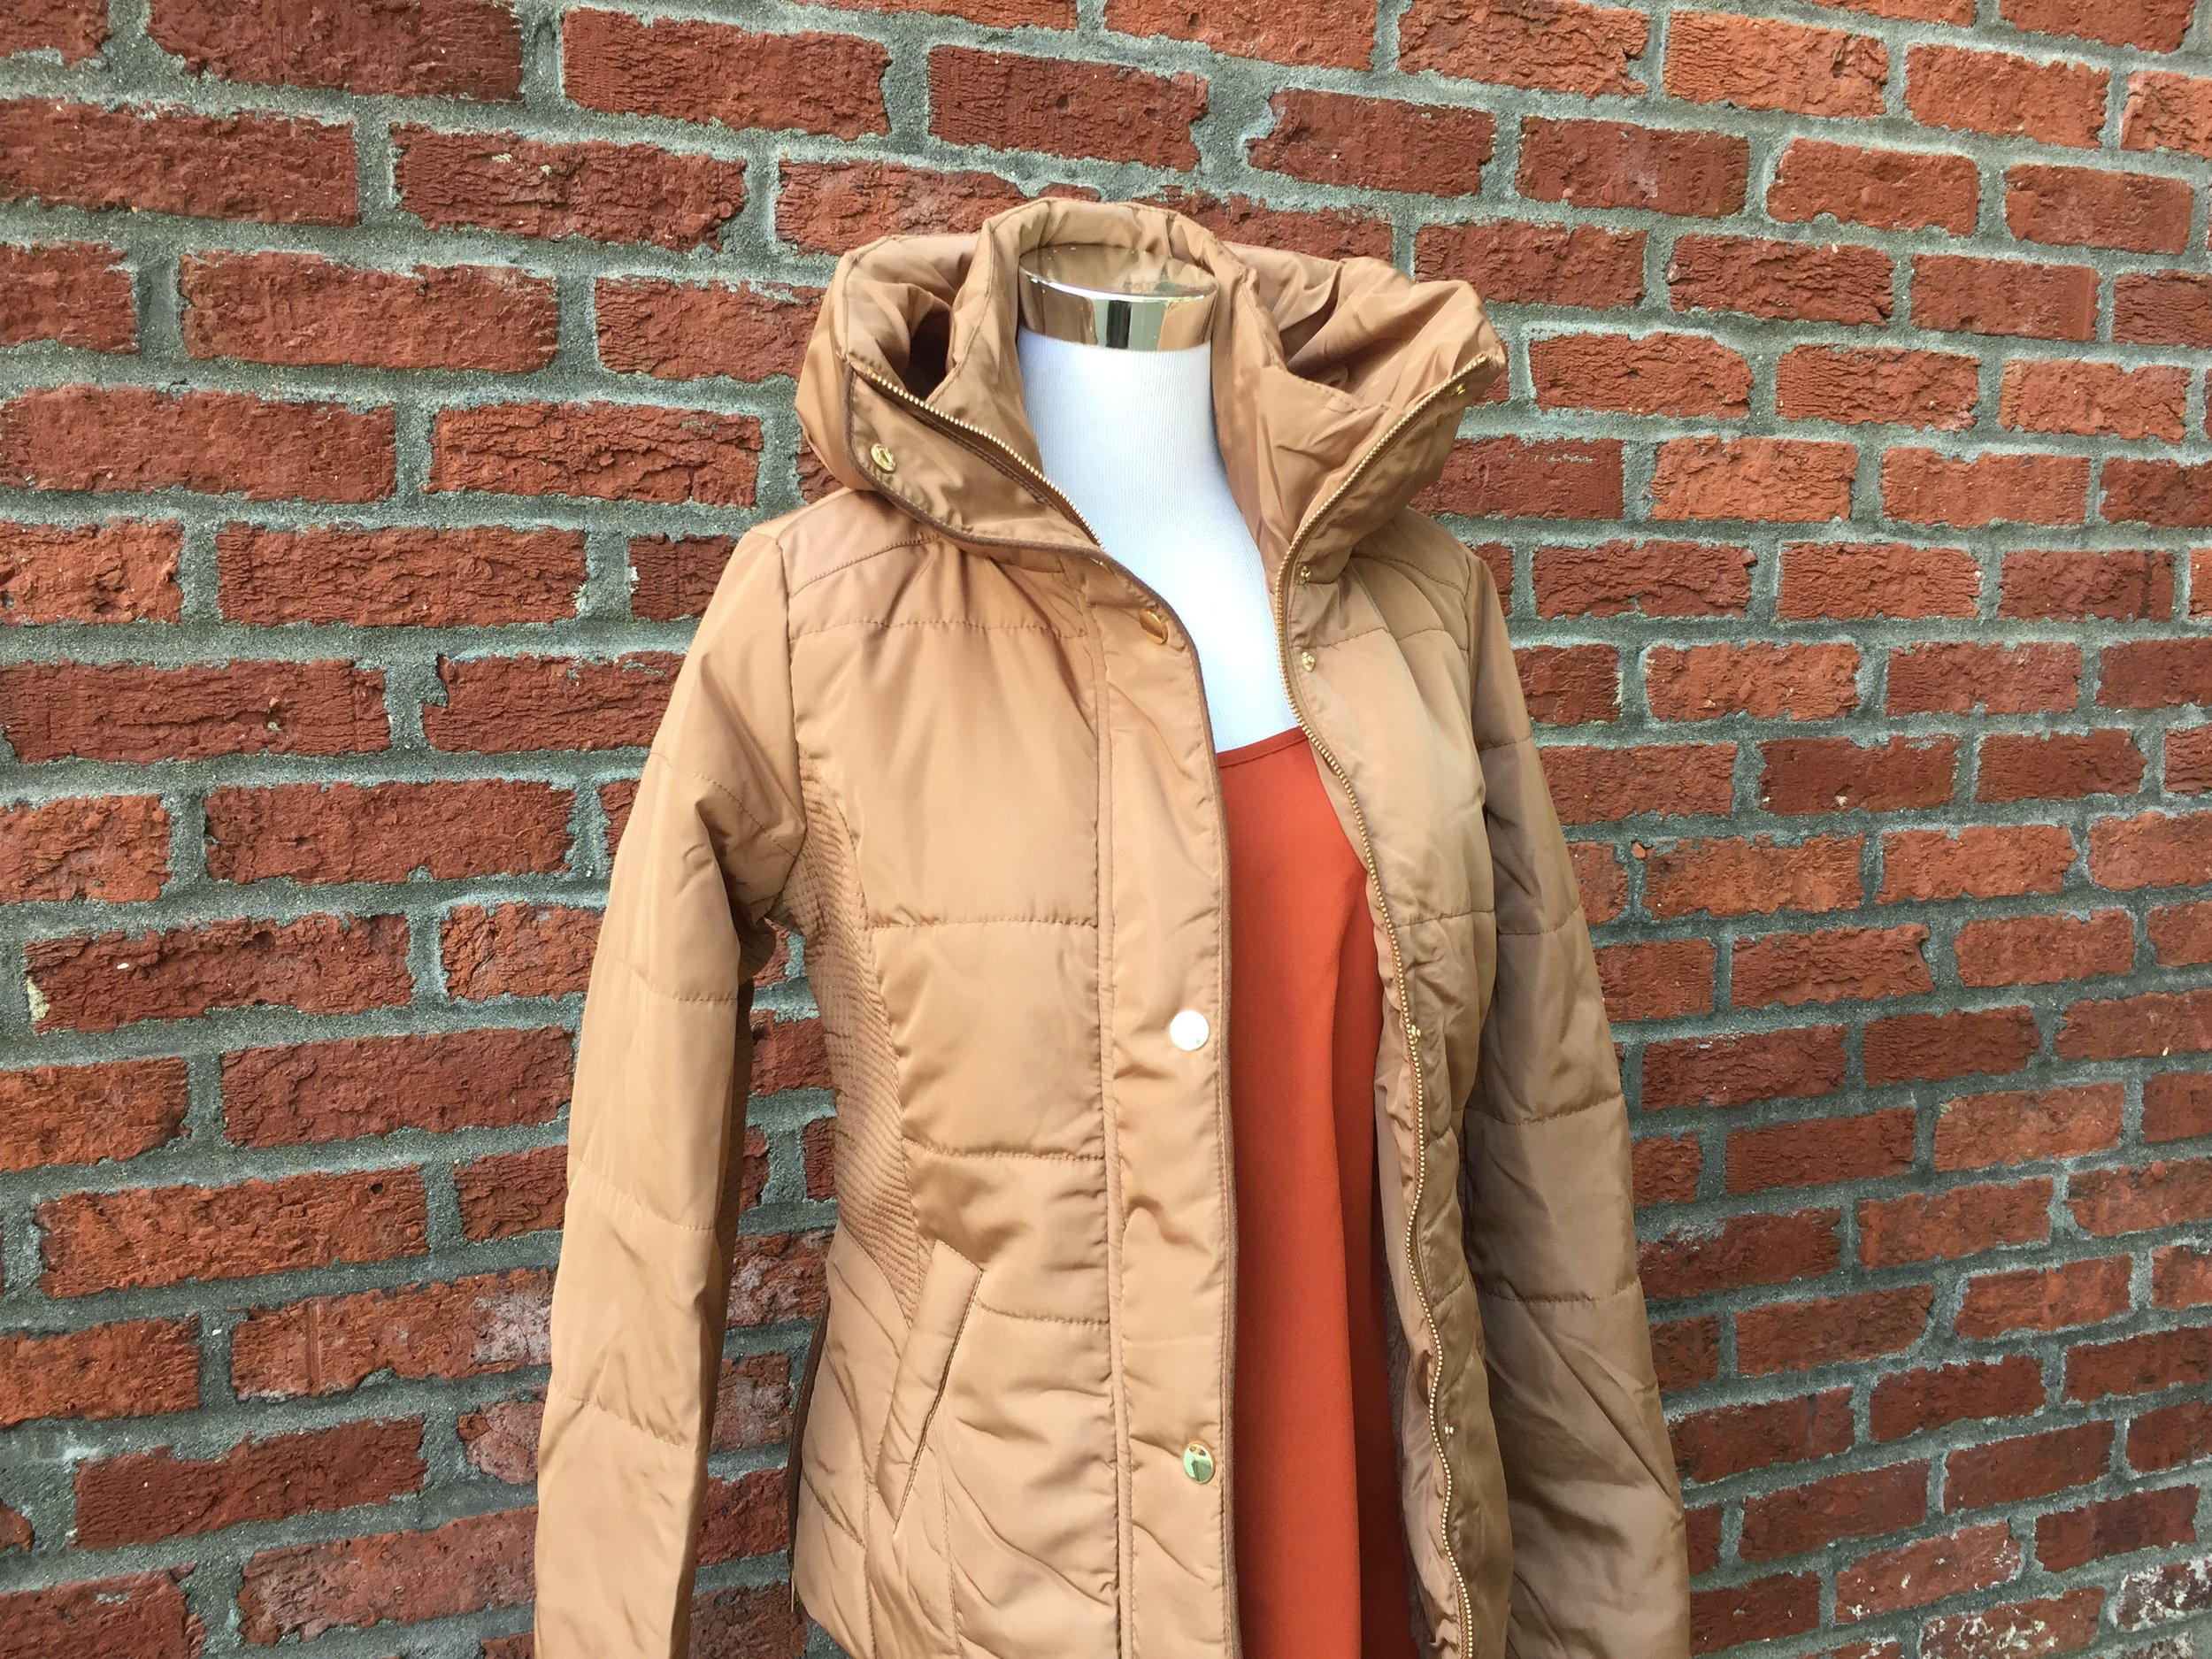 Tan Puffy Coat (Also in black)